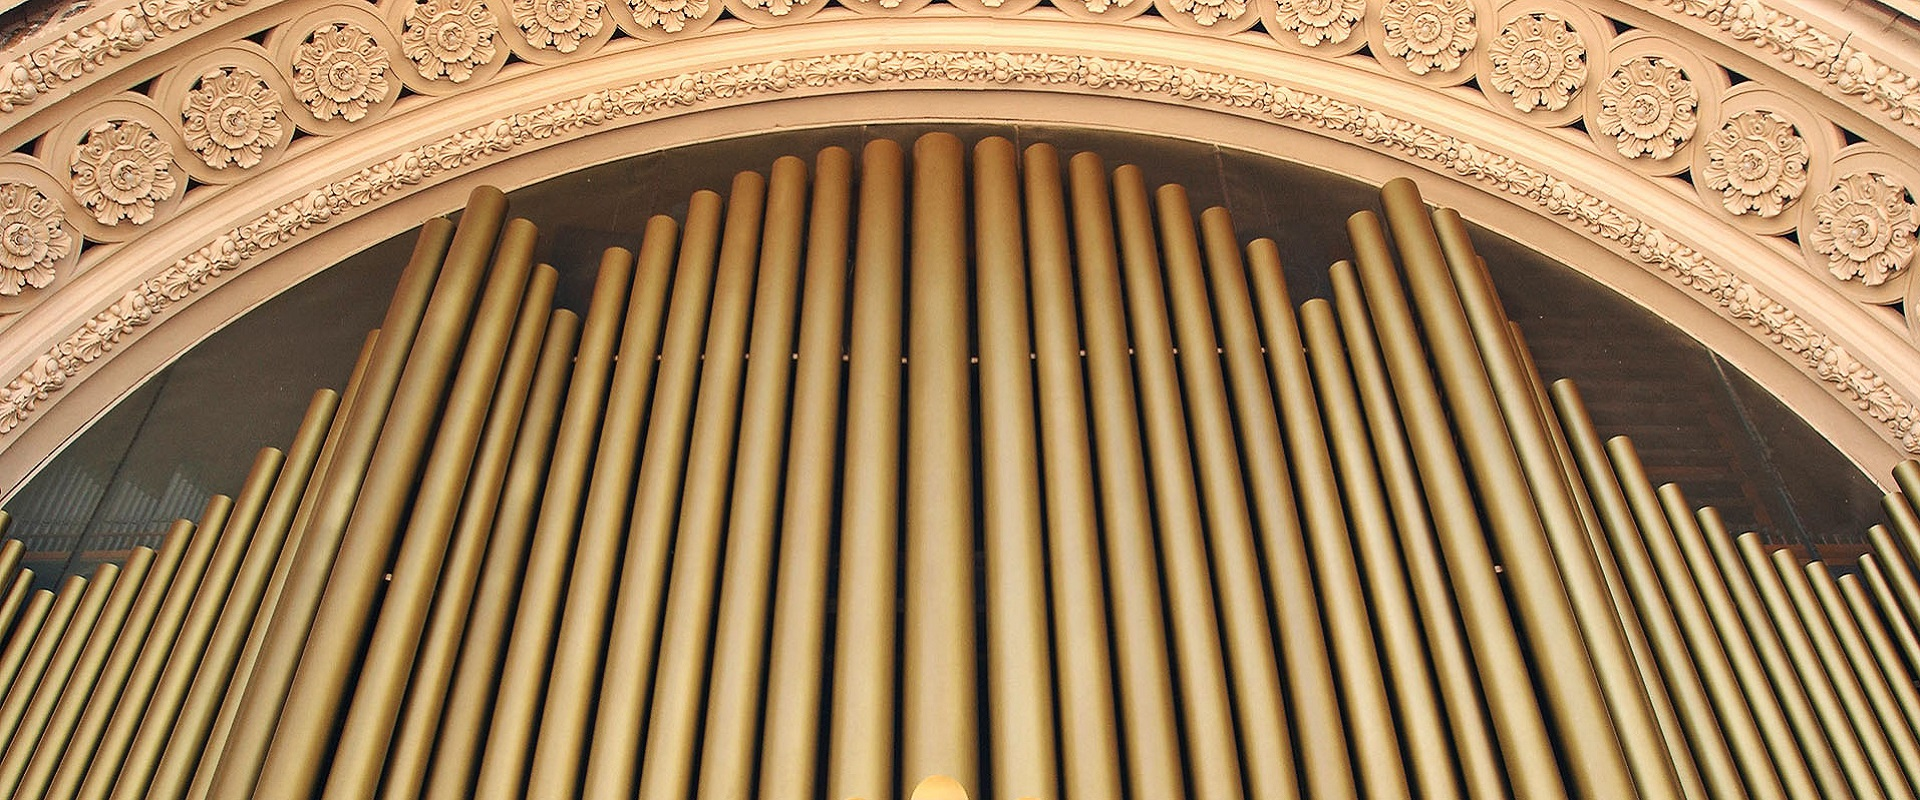 The Pipe Organ at Spreckels Organ Pavilion at Balboa Park